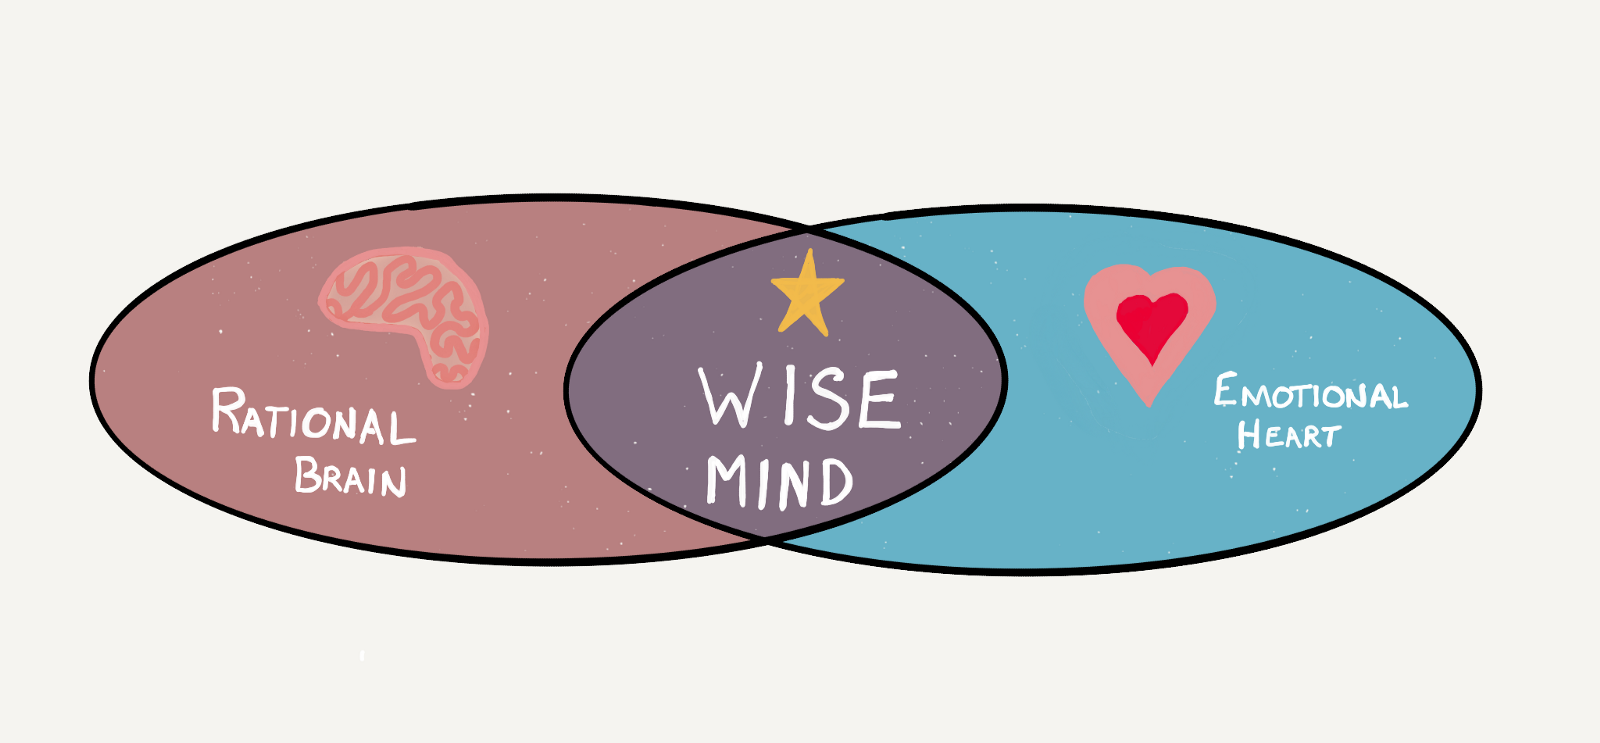 wisemind.png